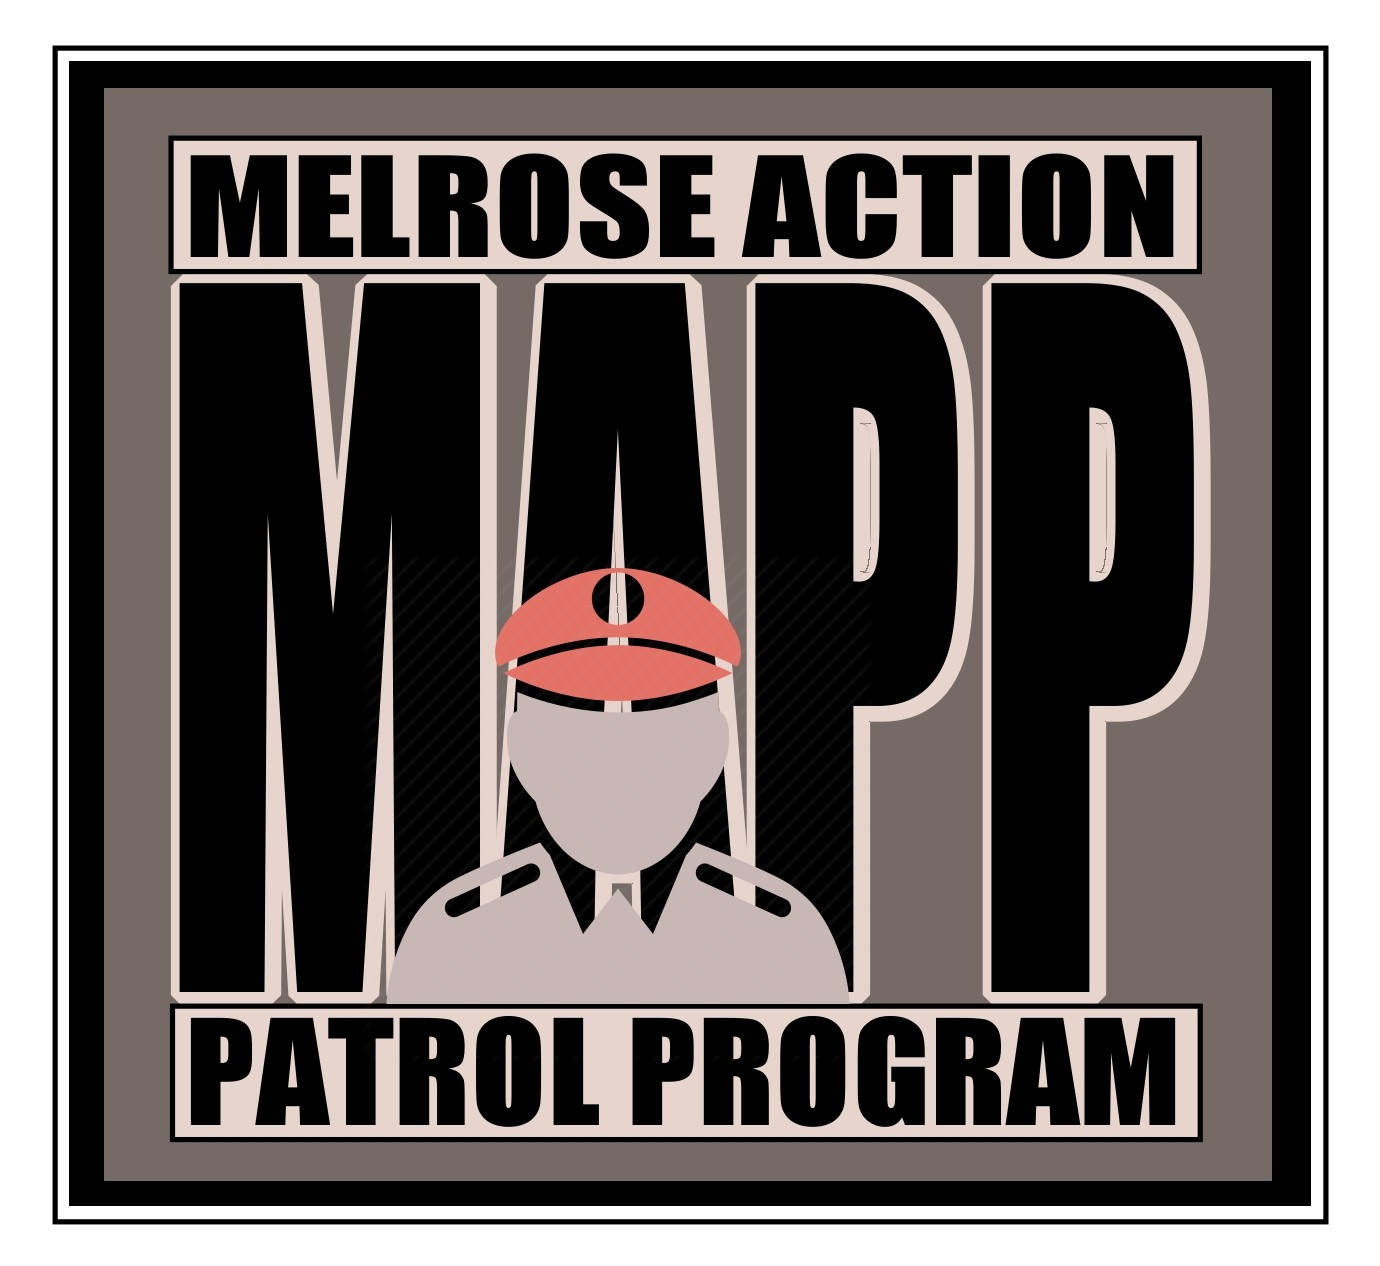 Melrose Action Patrol Program